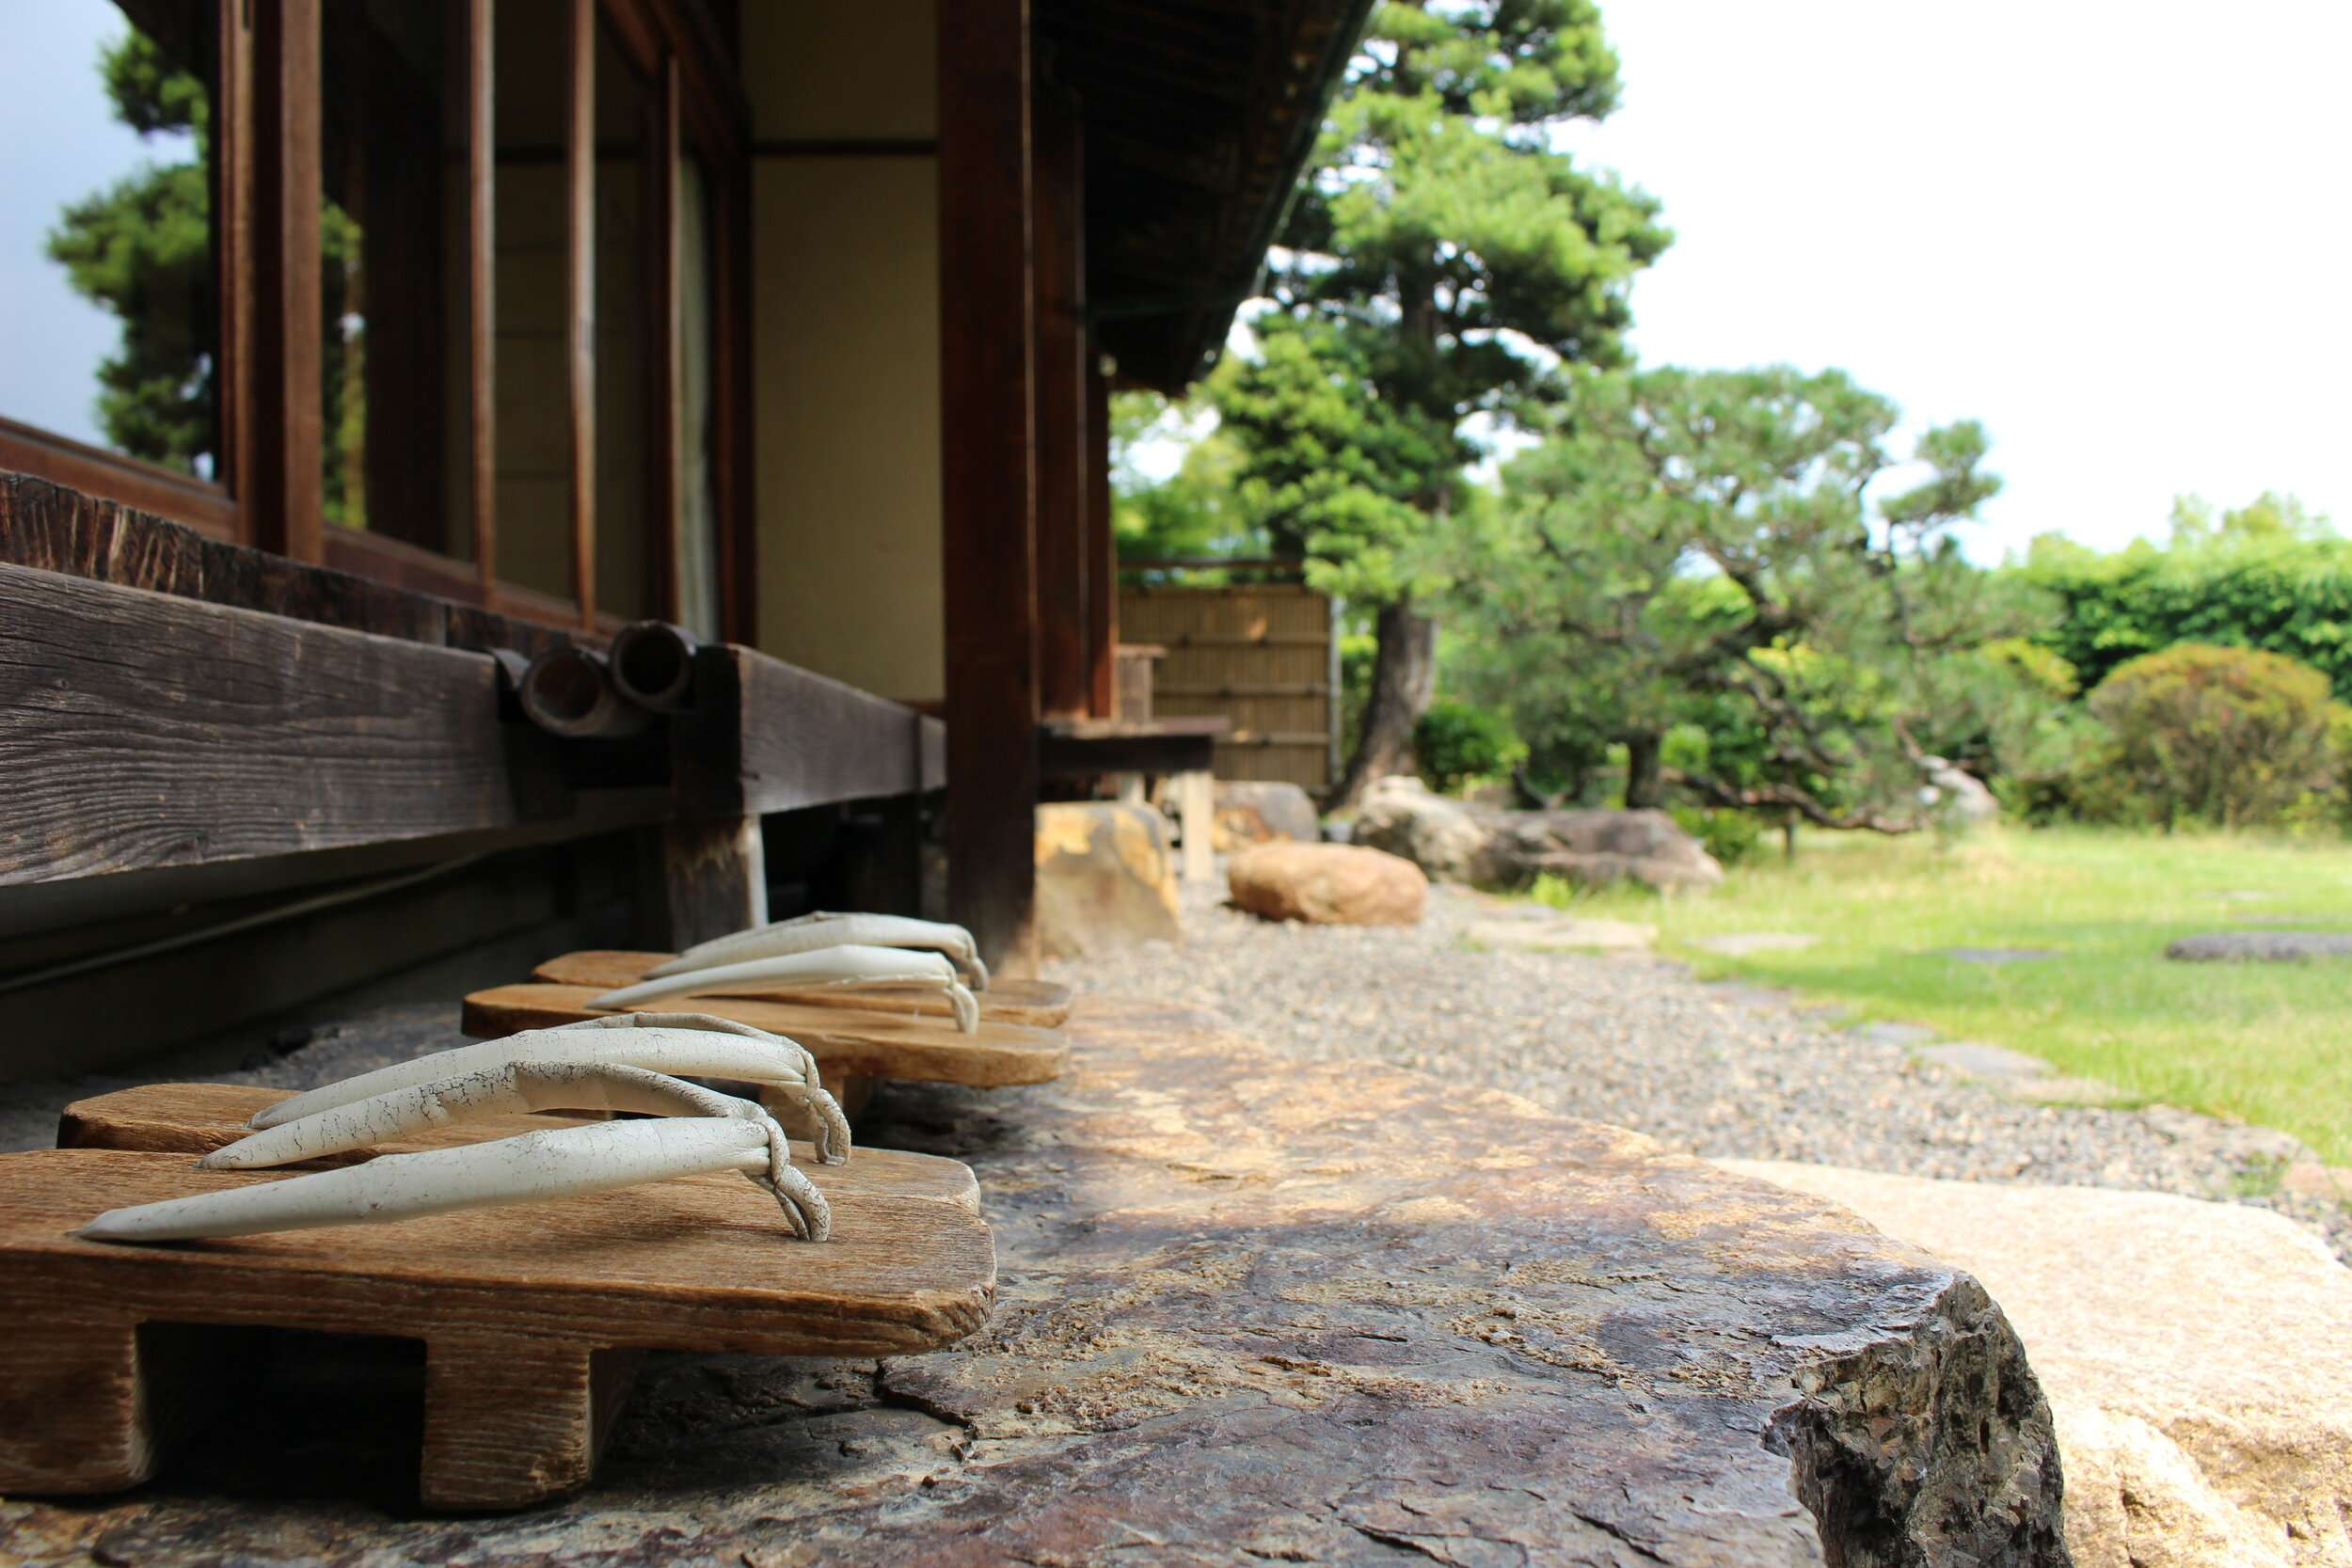 Traditional wooden shoes at Yoshida Sanso Ryokan in Kyoto, Japan